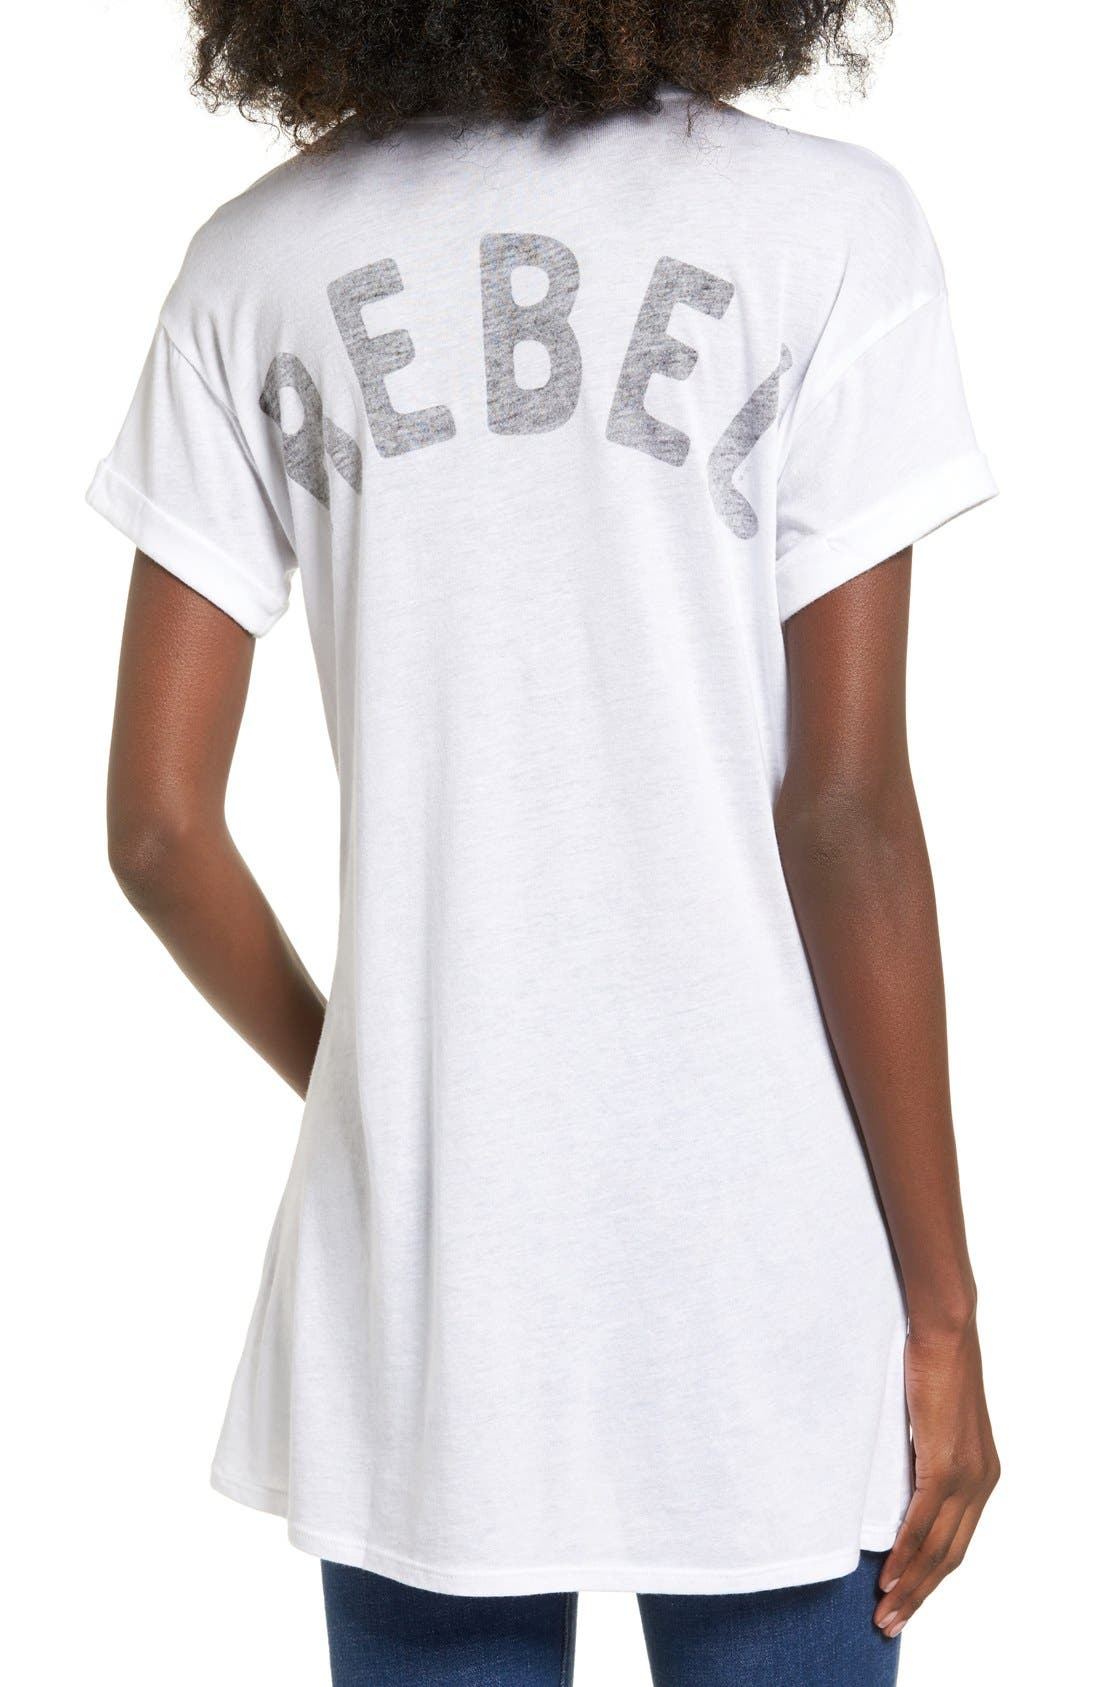 Alternate Image 1 Selected - Michelle by Comune Petersburg Rebel Graphic Tee